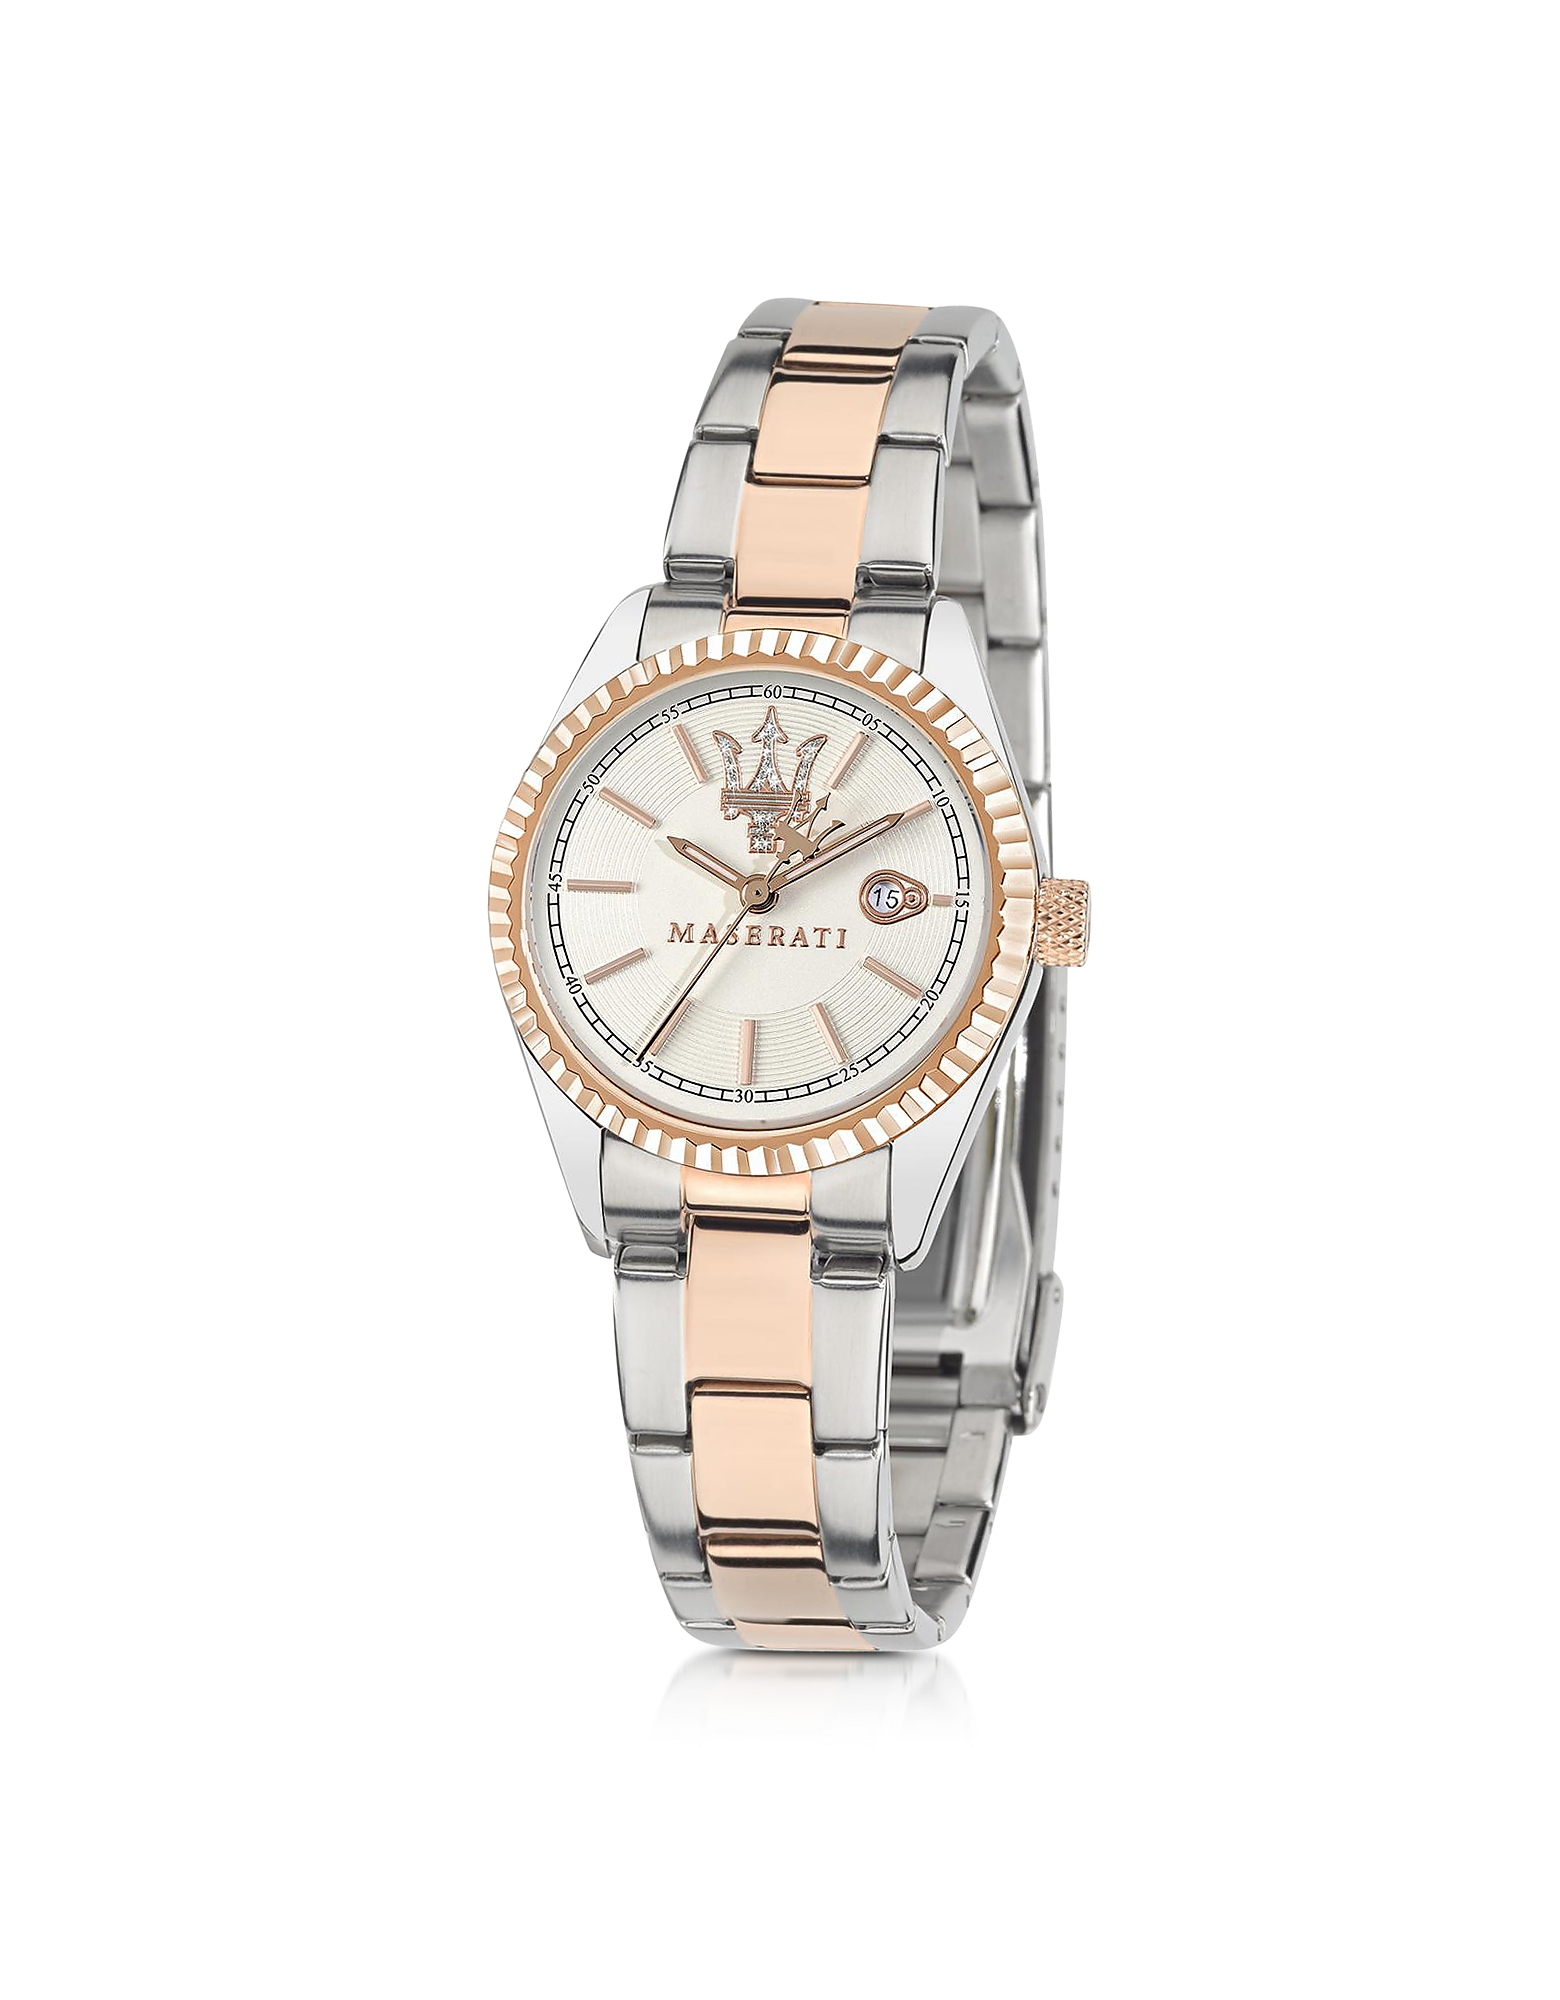 Maserati Women's Watches, Competizione Silver and Rose Golden Stainless Steel Women's Watch